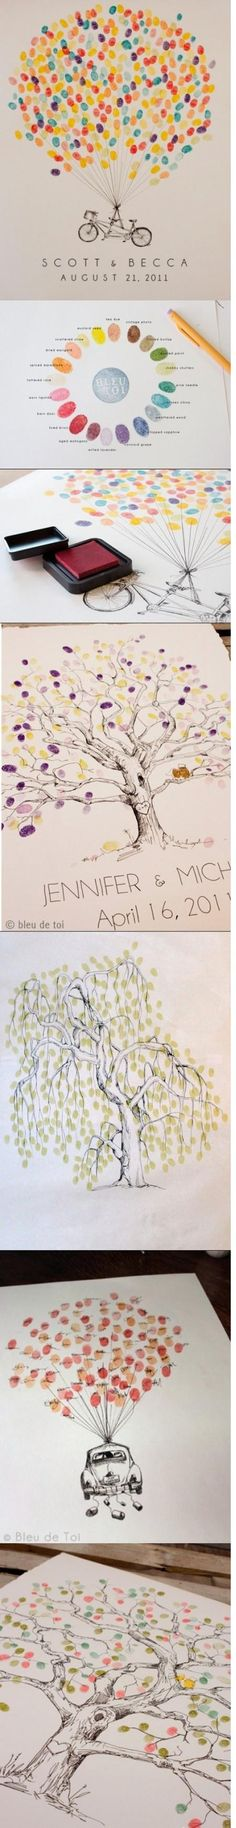 Fingerprints Guestbook - I love the car one